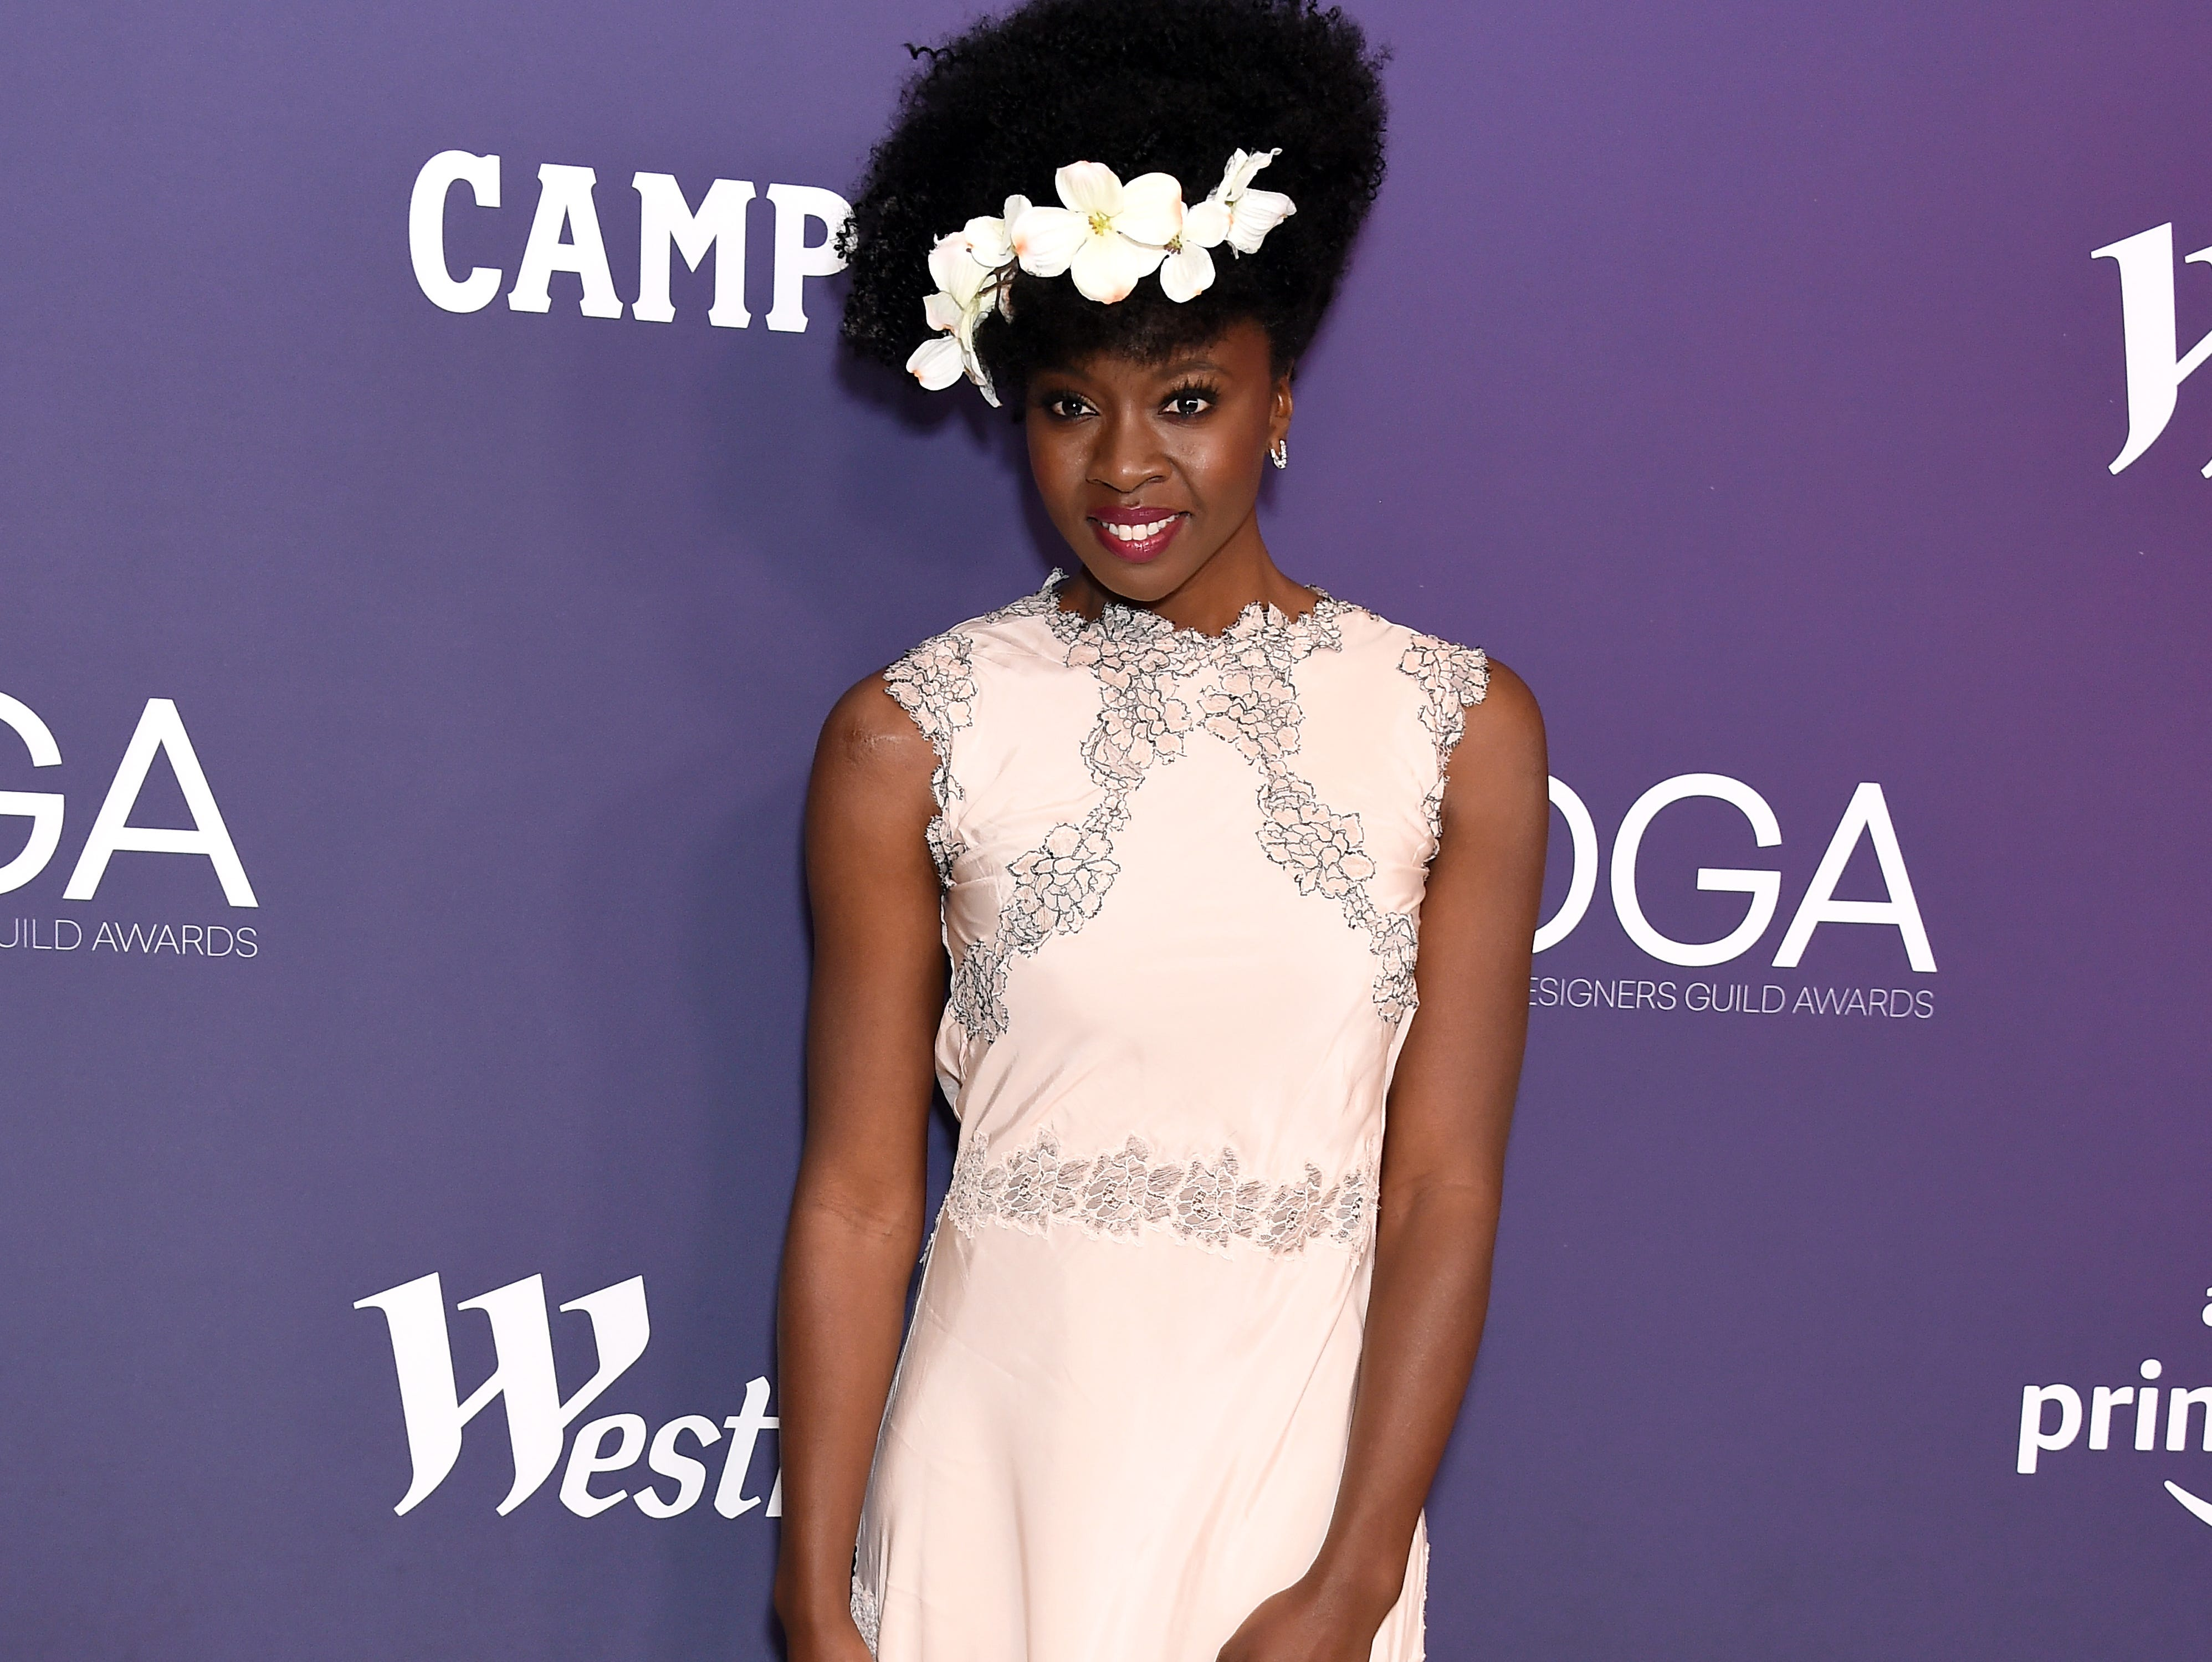 BEVERLY HILLS, CALIFORNIA - FEBRUARY 19: Danai Gurira attends The 21st CDGA (Costume Designers Guild Awards) at The Beverly Hilton Hotel on February 19, 2019 in Beverly Hills, California. (Photo by Gregg DeGuire/WireImage) ORG XMIT: 775282683 ORIG FILE ID: 1130829075